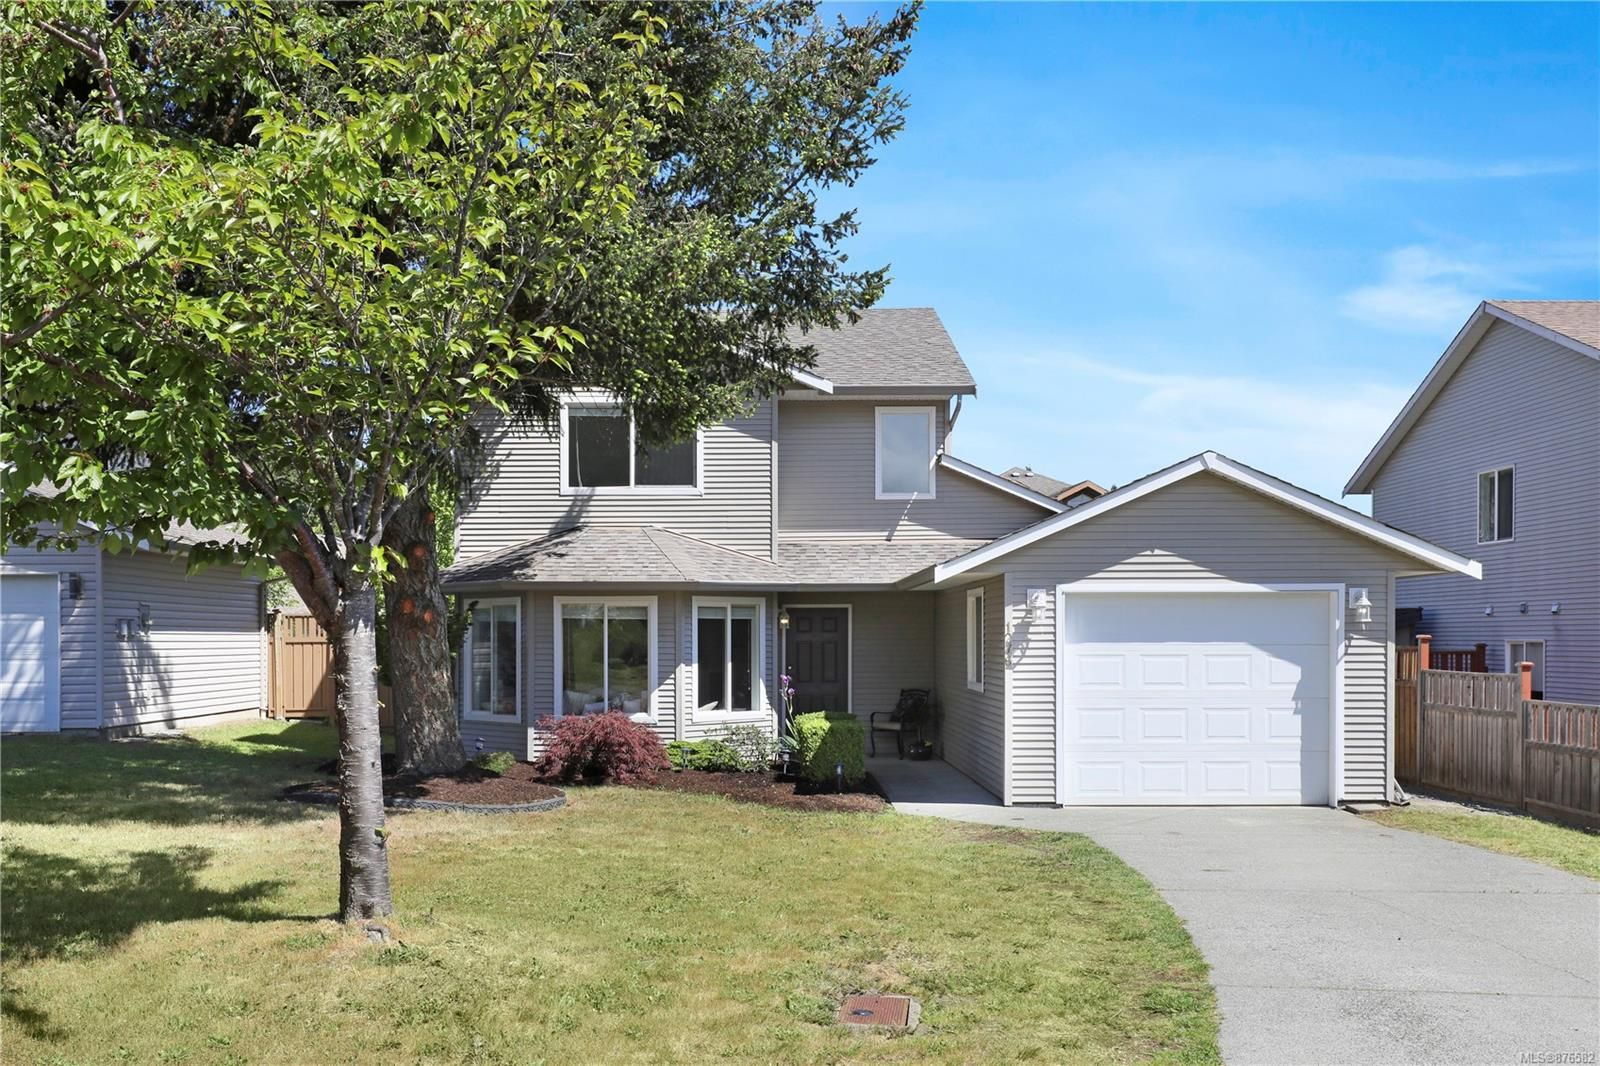 Main Photo: 1276 Crown Pl in : CV Comox (Town of) House for sale (Comox Valley)  : MLS®# 876582